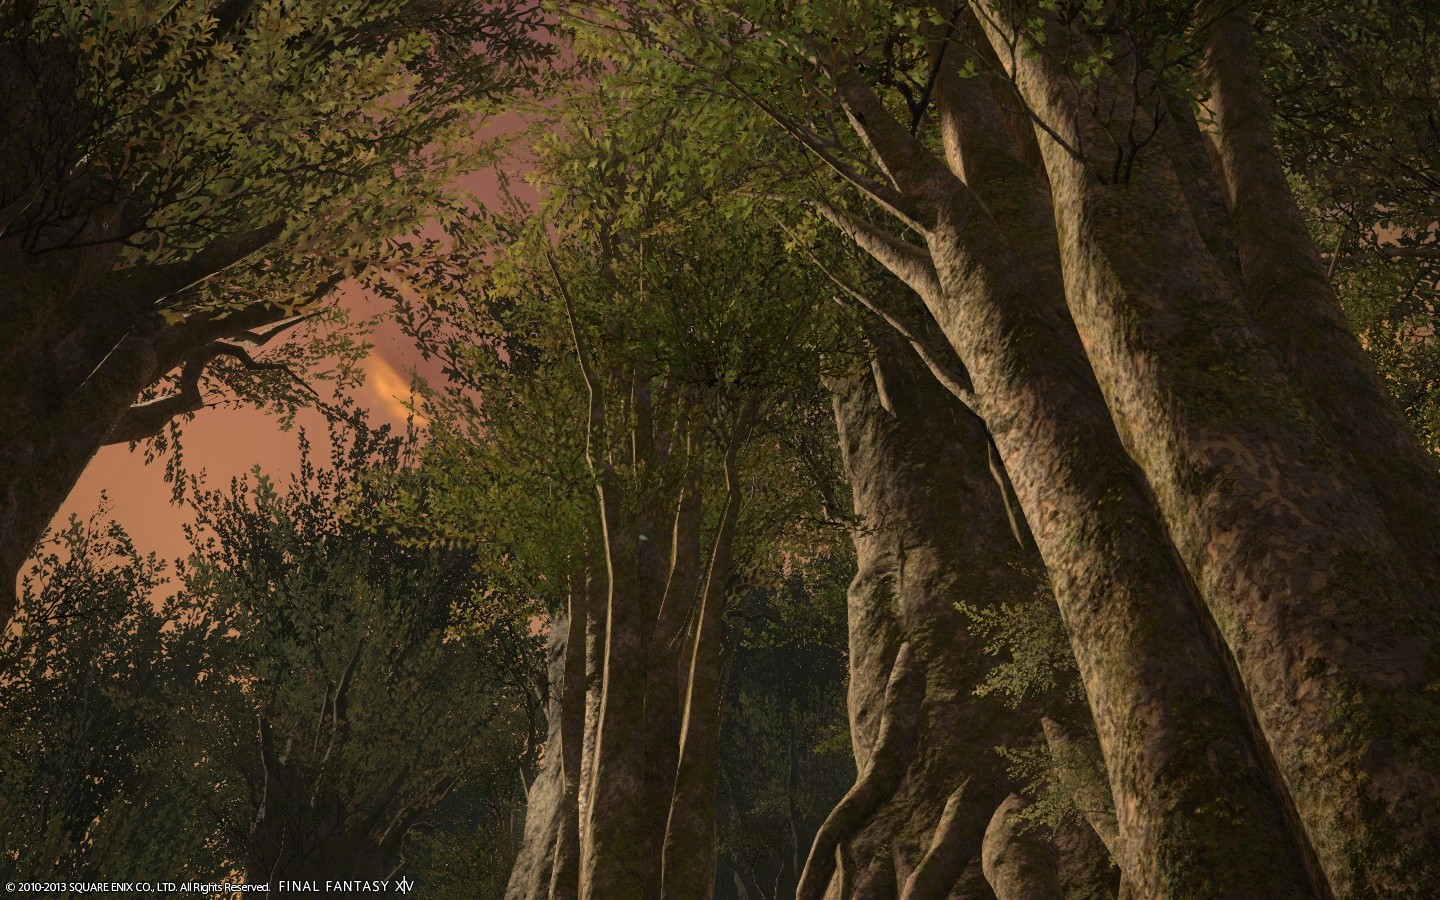 Final Fantasy XIV: A Realm Reborn - Late Afternoon